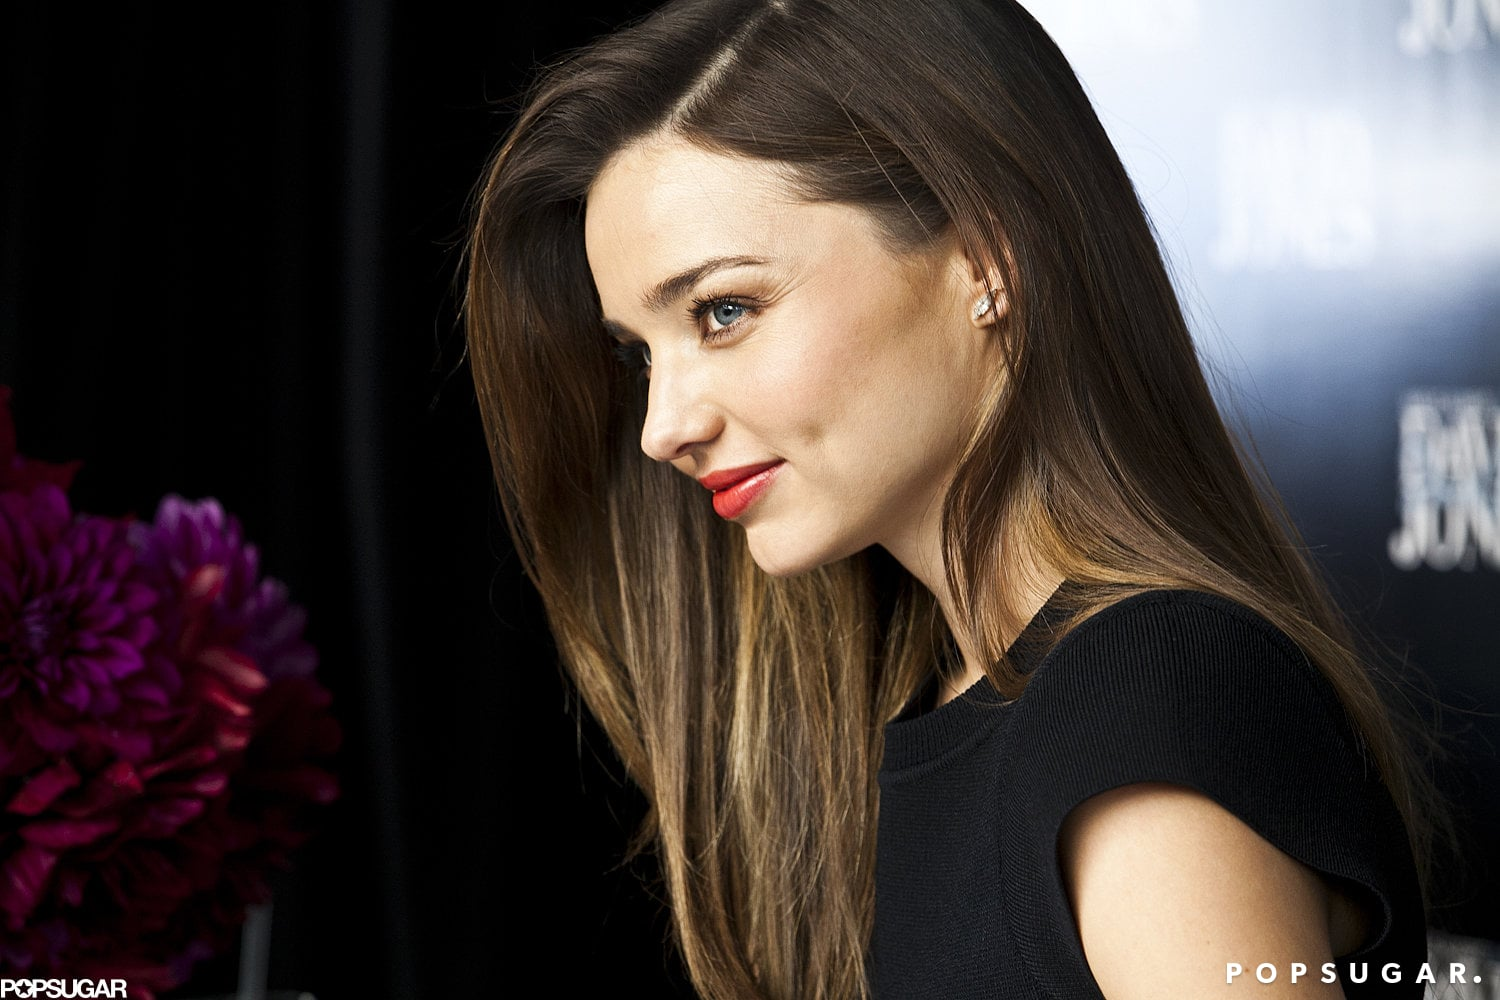 miranda kerr wore her hair down and finished off her look